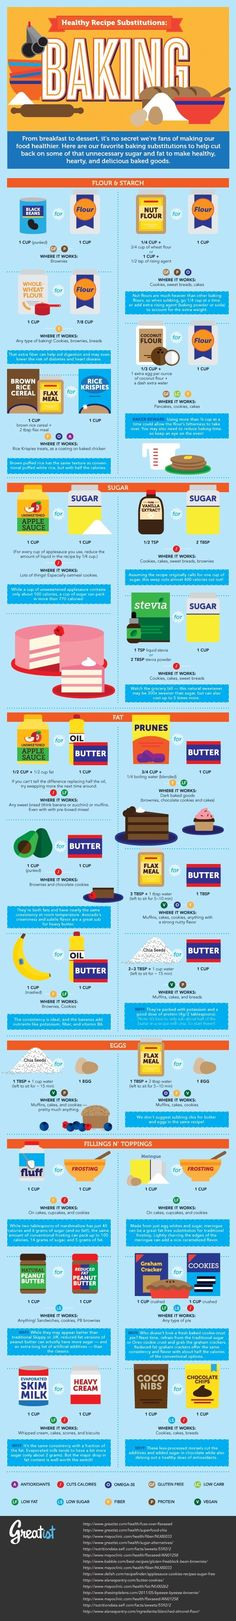 Exchange and see the difference in your waist! http://greatist.com/health/healthy-baking-recipe-substitutions-infographic